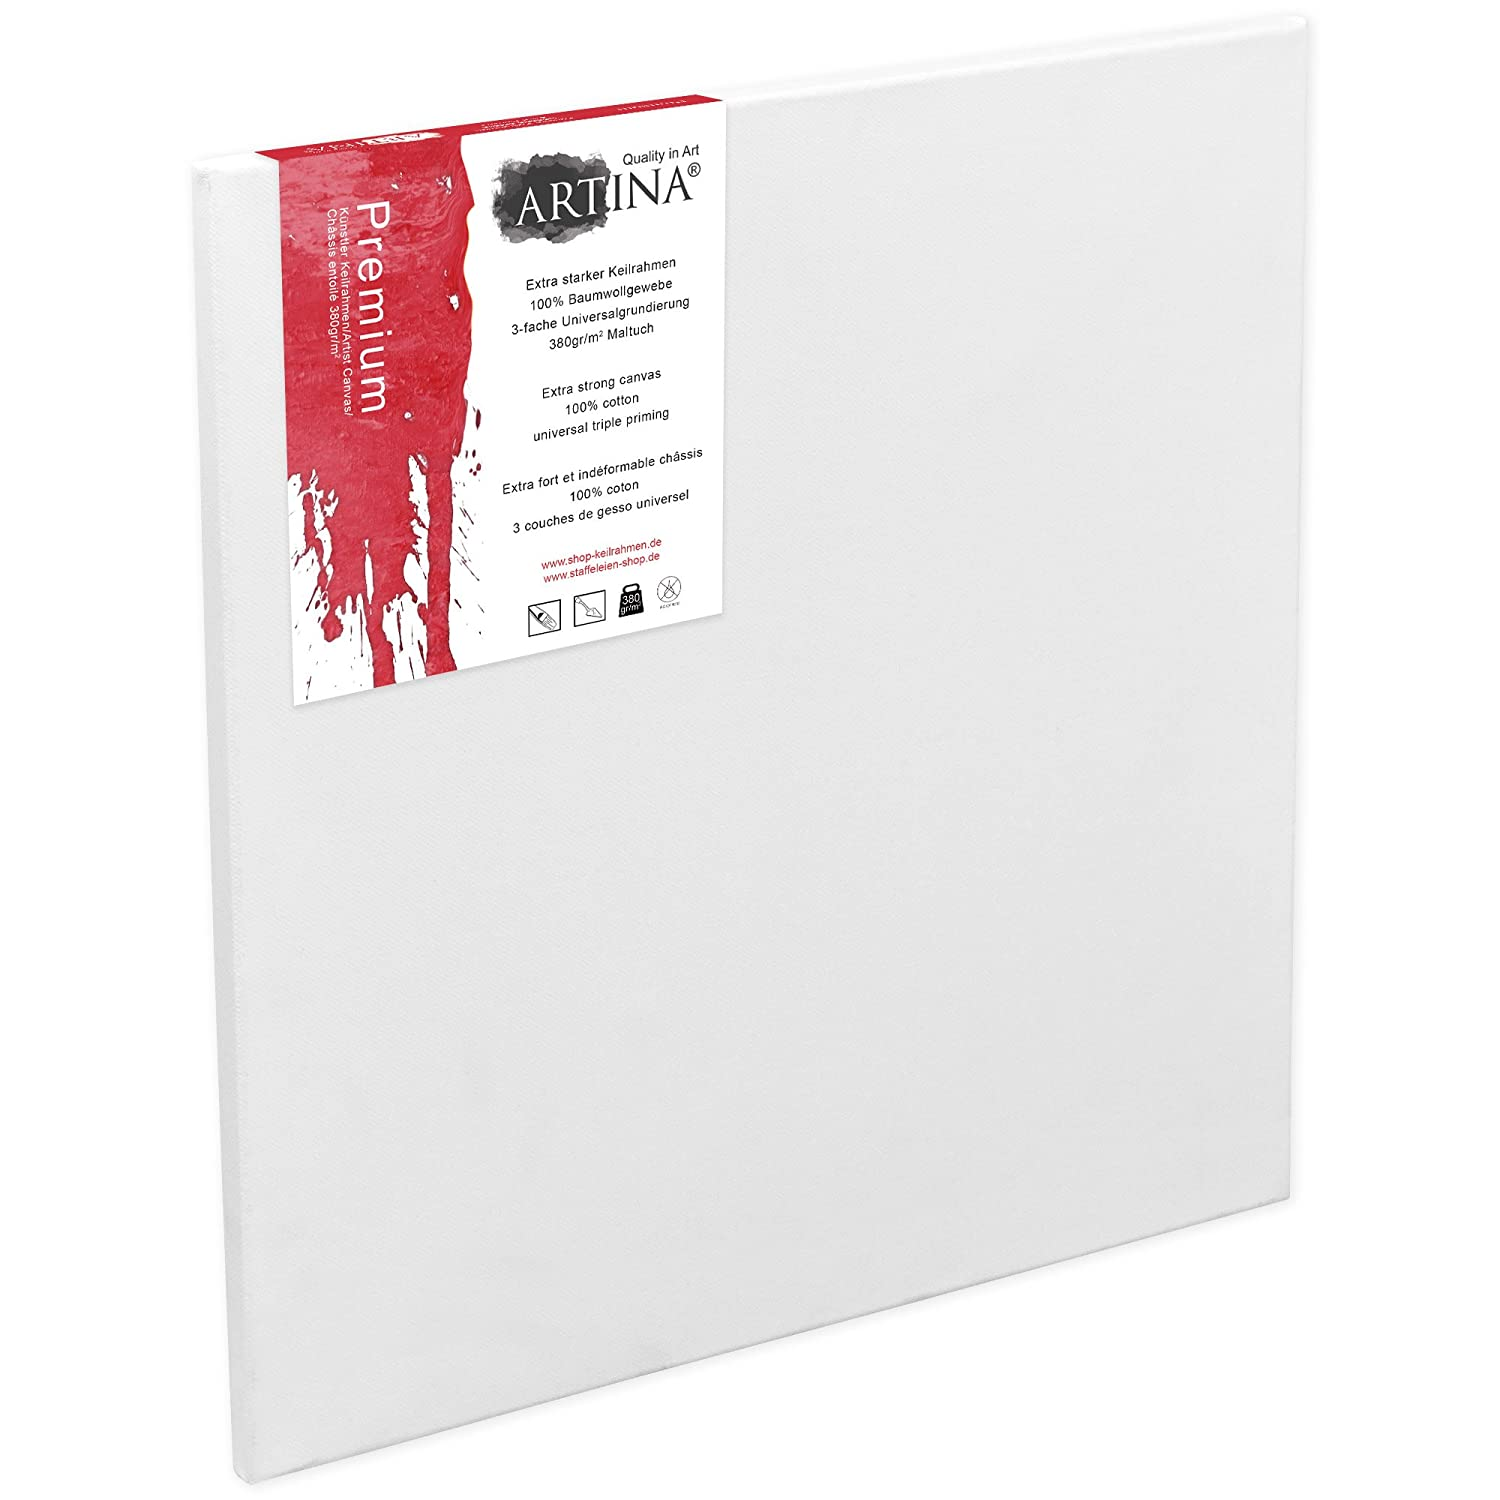 Artina Art Canvases 60 x 80 cm Stretched & Triple Primed Premium Quality Artist Blank Canvas Bulk 23 x 31 Inch